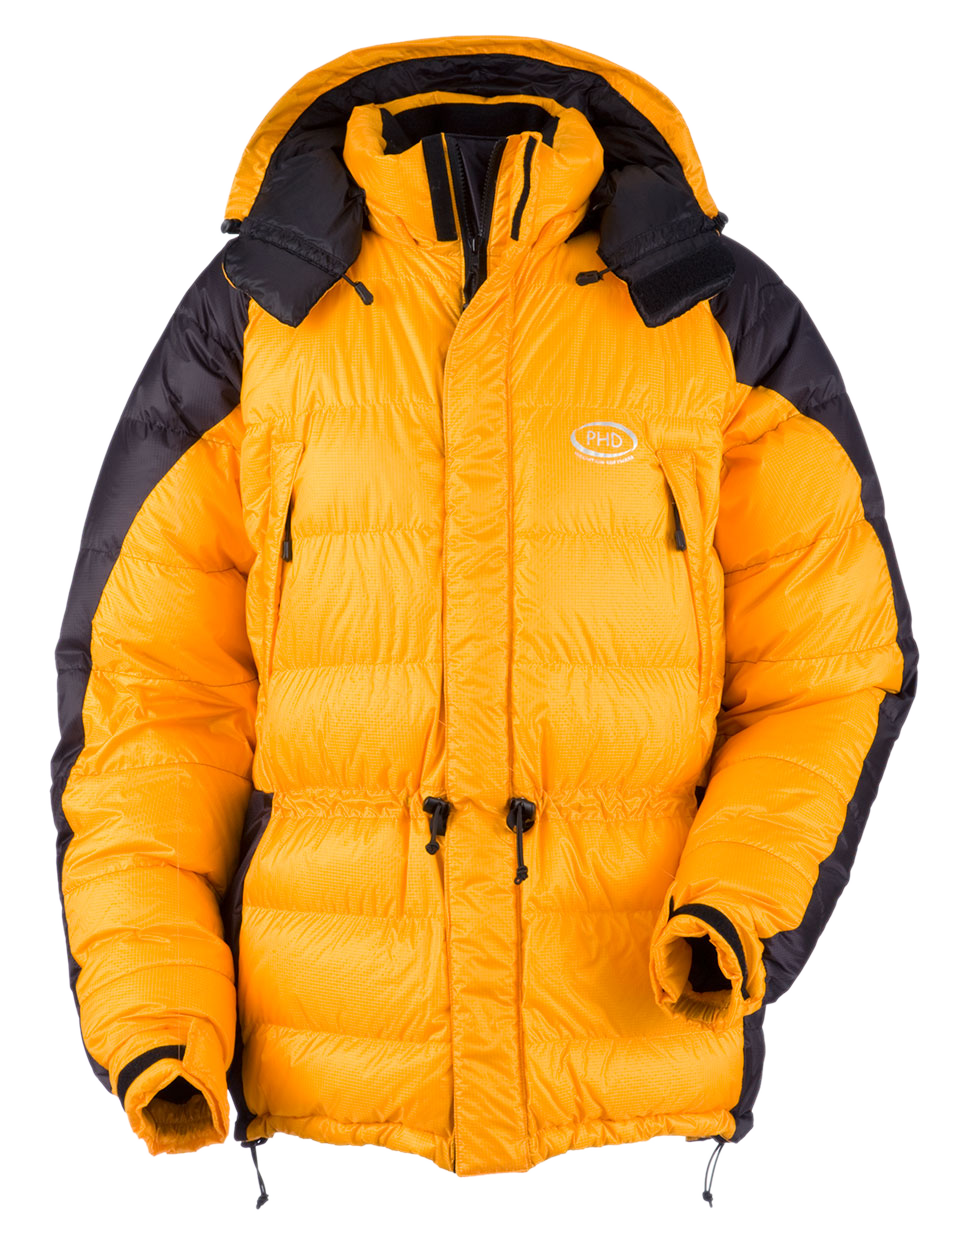 Coyote Fur Mountain Man Hat Full Coyote Pelt P 331 together with theallergyshop in addition Hobie Safety Flag And Light likewise Sw7 Smith And Wesson Black 5 2 Inch Tanto Fixed Blade Knife additionally Gildan Heavy Blend Crewneck Sweatshirt. on insulated clothing